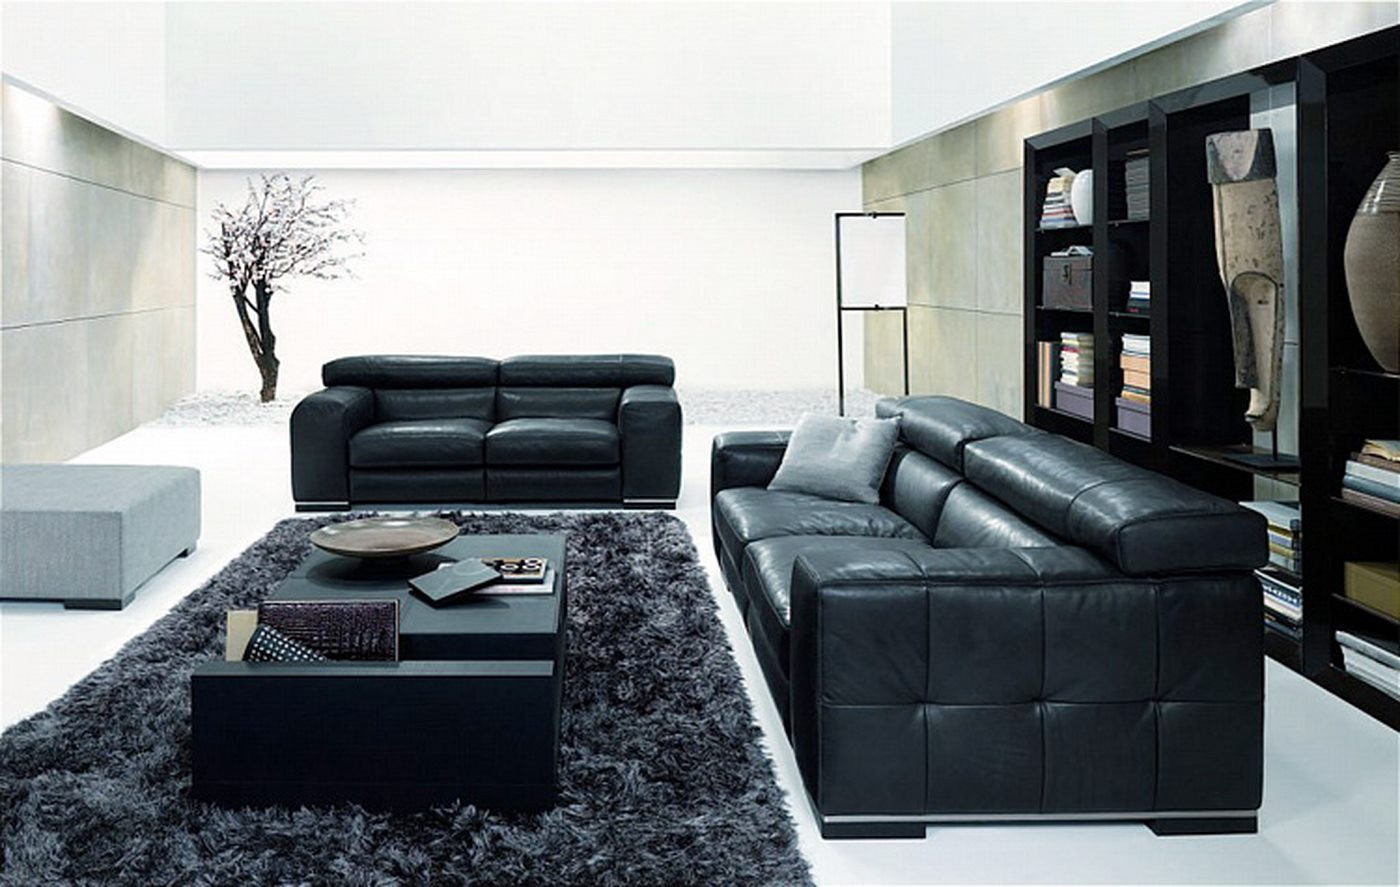 Black Living Room Designs Amazing New Nicolas Living Room Design with Black sofa